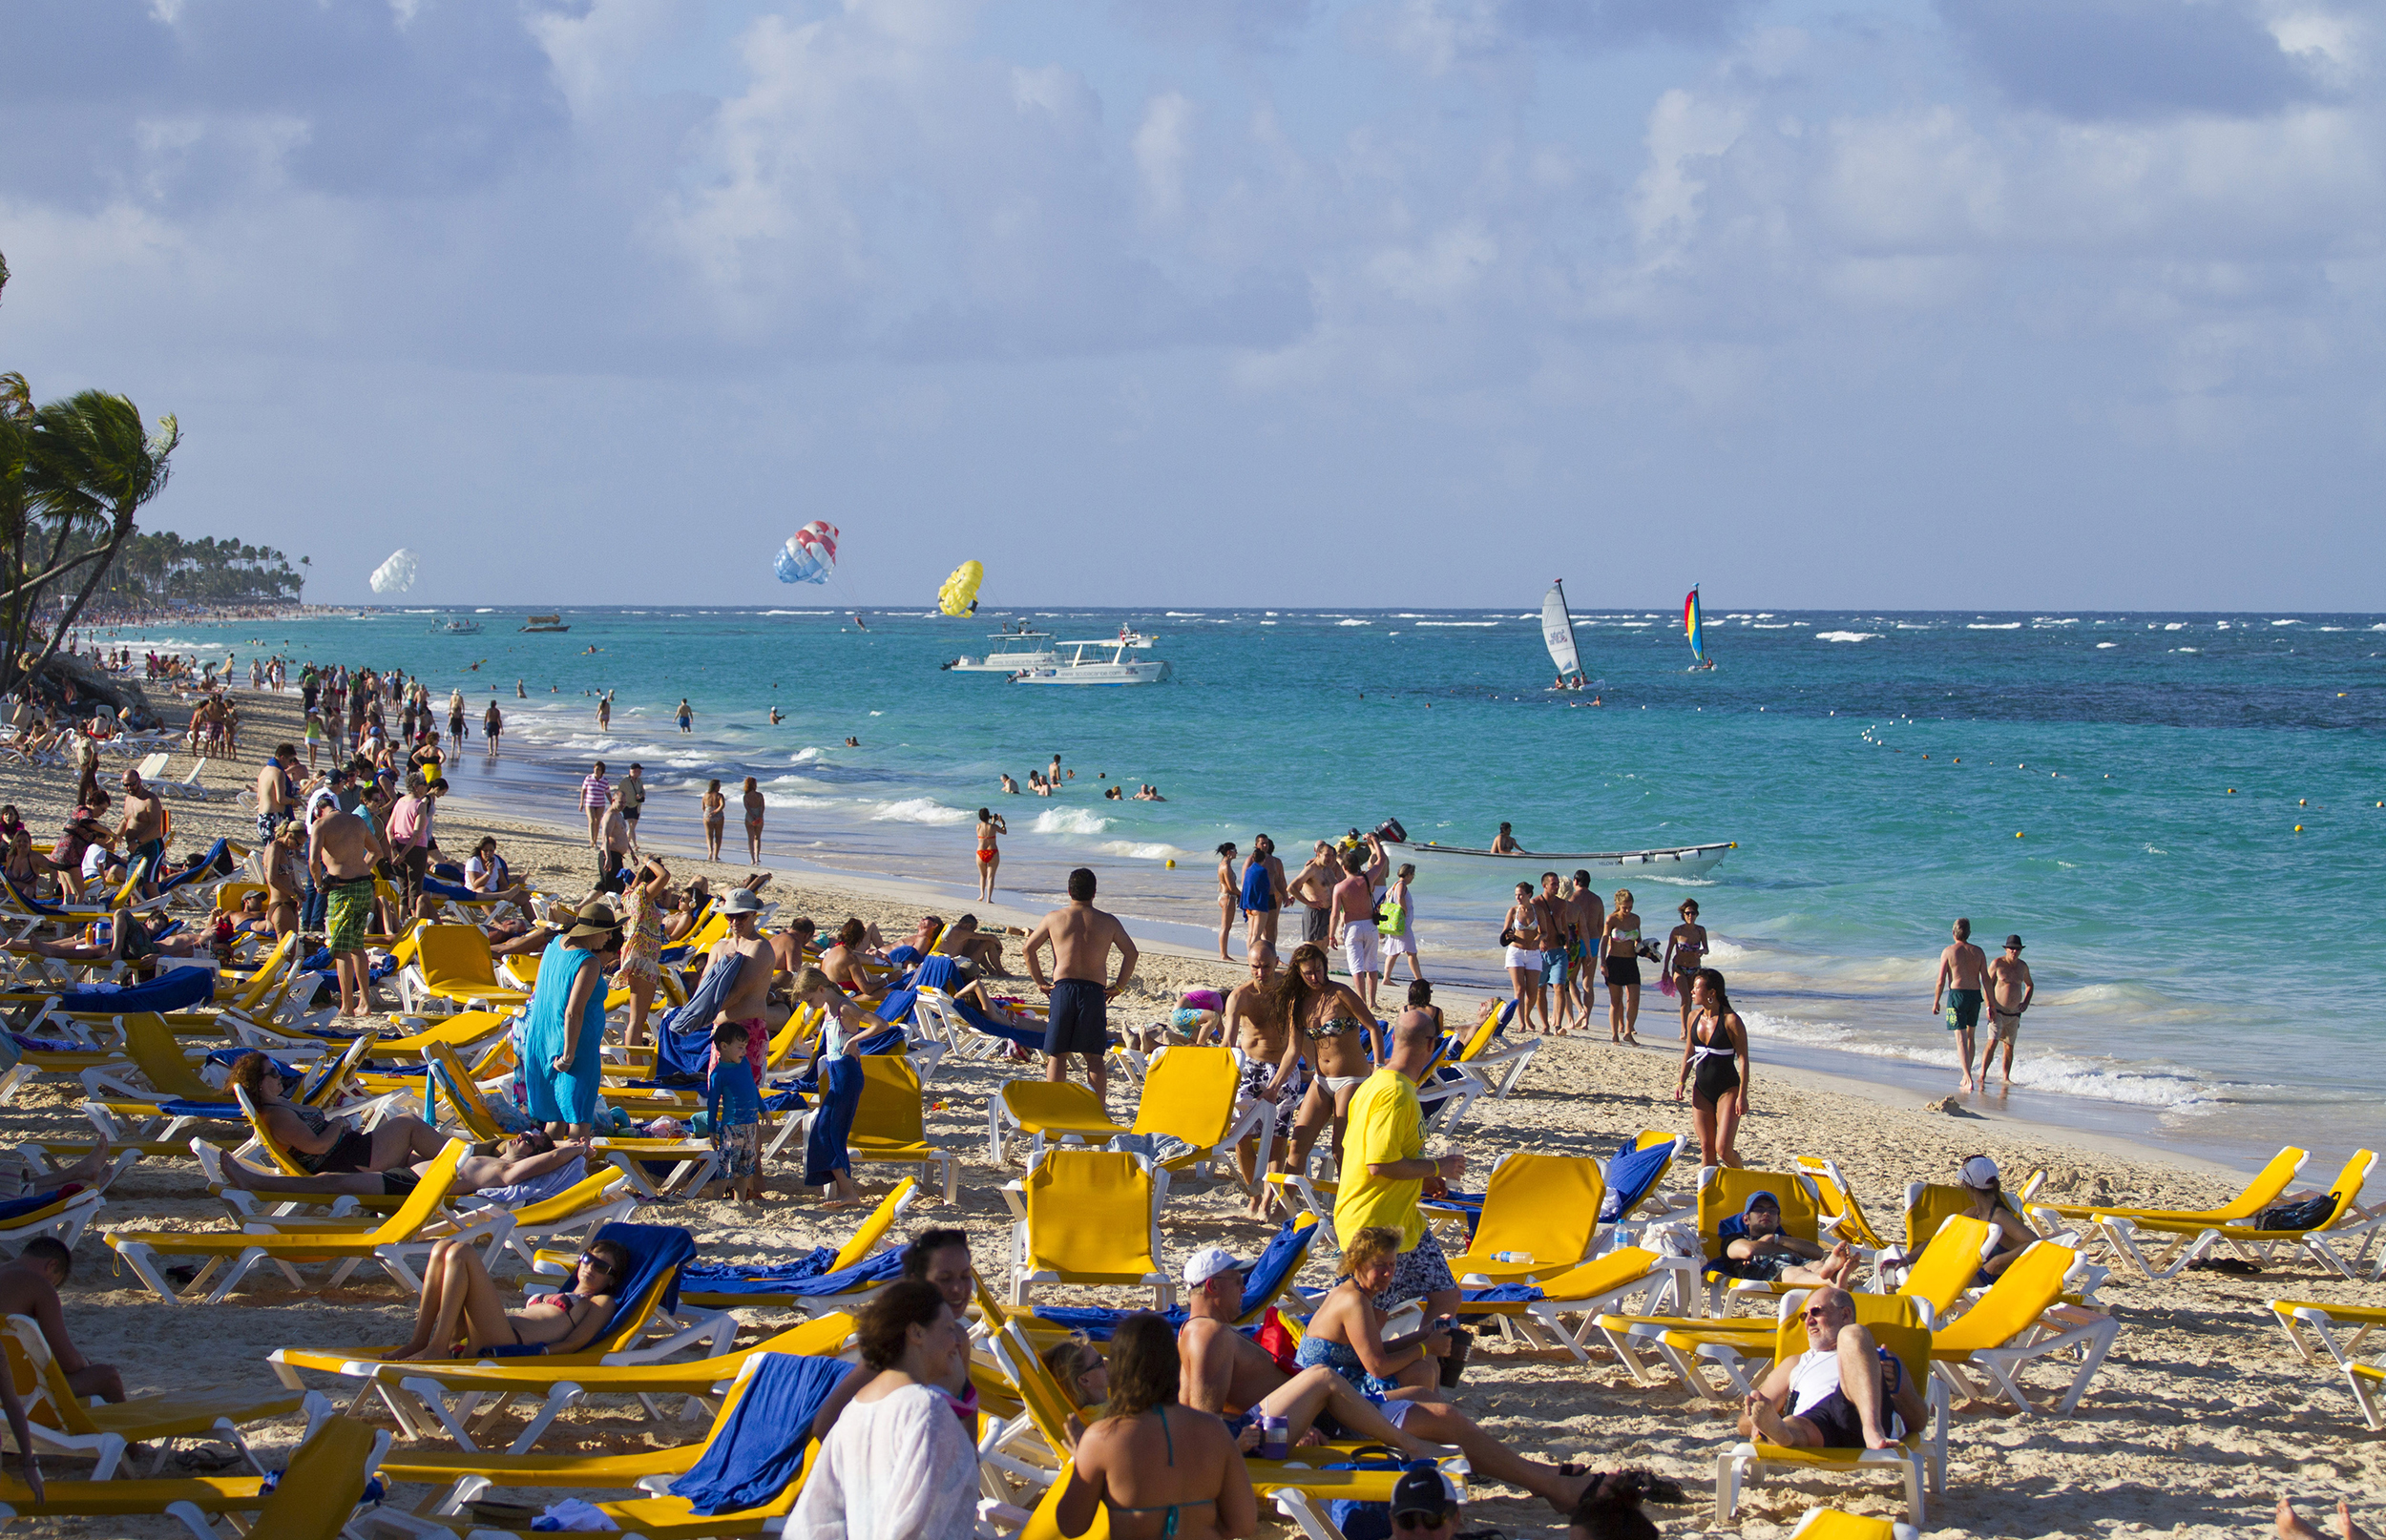 FBI tests find no evidence of wrongdoing in deaths of U.S. tourists in the Dominican Republic